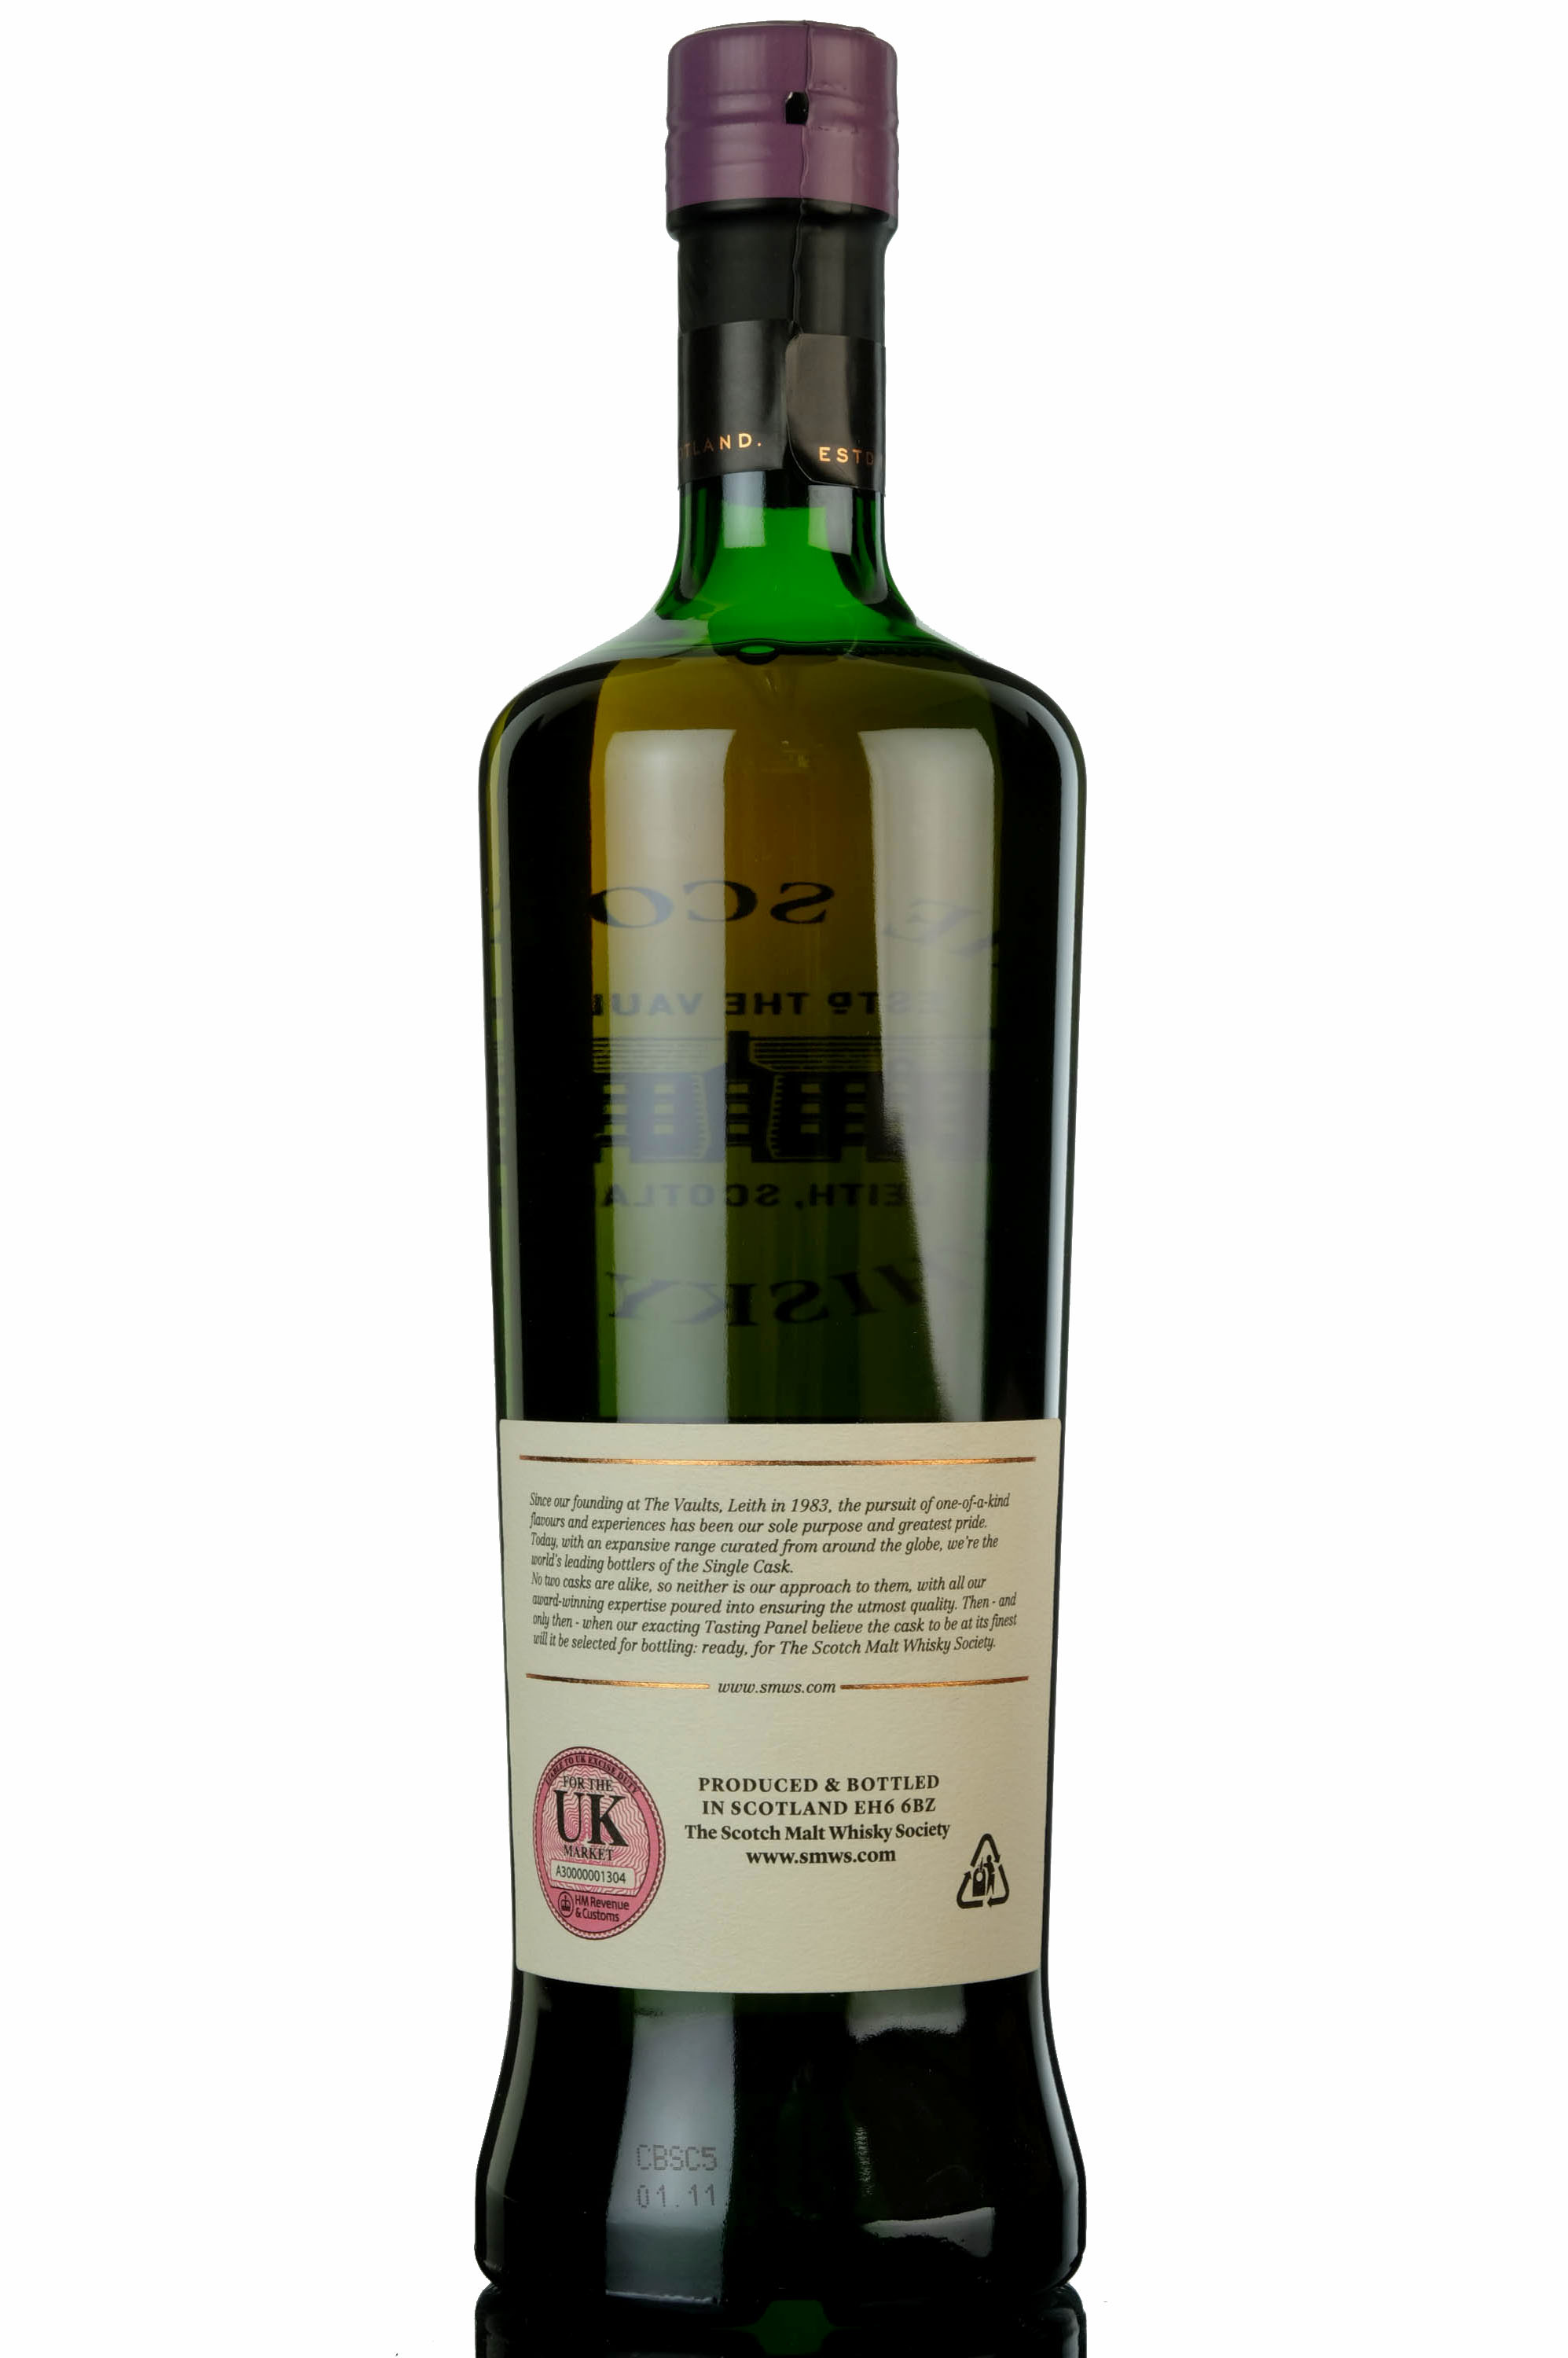 longmorn 1992 - 25 year old - smws 7.193 - cherry fudge with dark chocolate